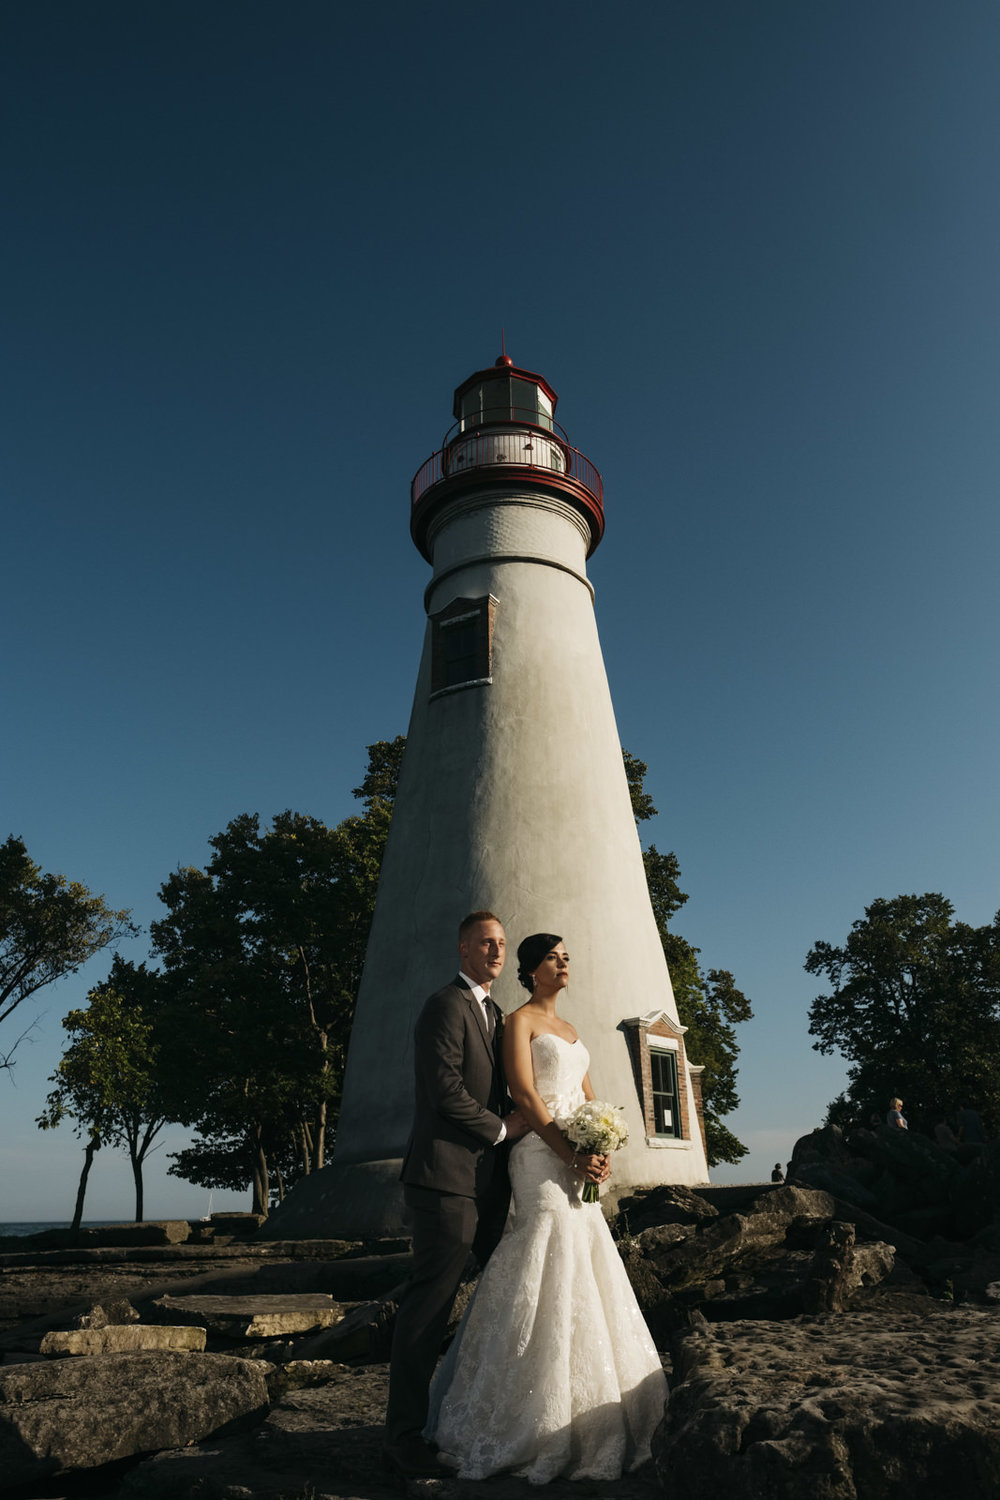 bride and groom stand for a portrait near a lighthouse in Northern Ohio on the shores of Lake Erie.